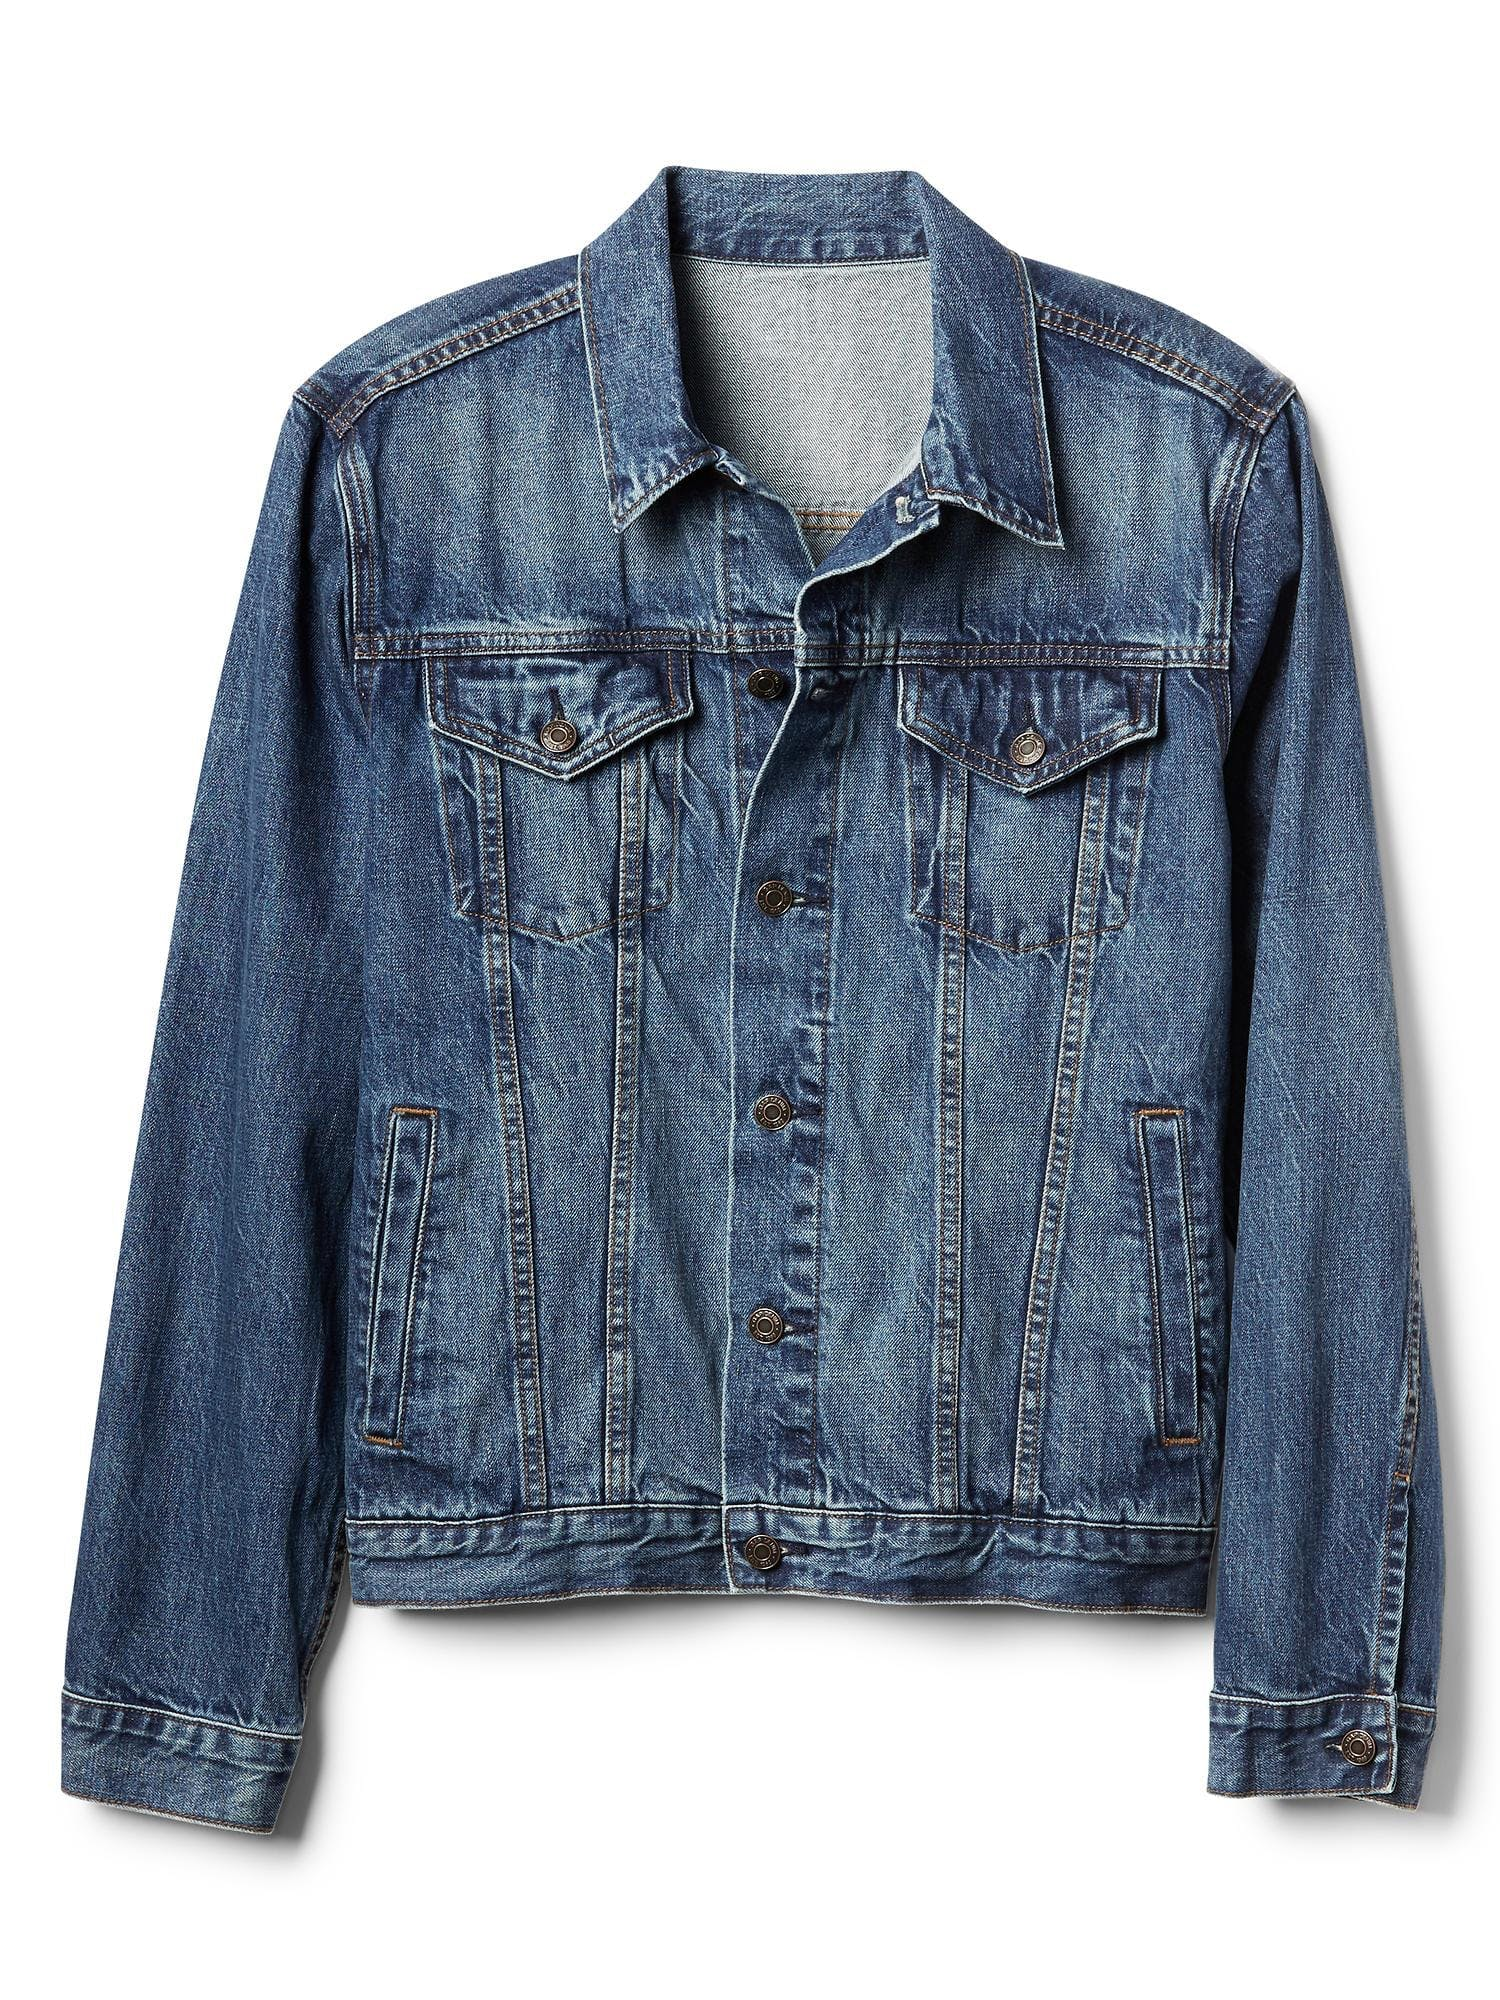 gap, denim jacket, jean jacket